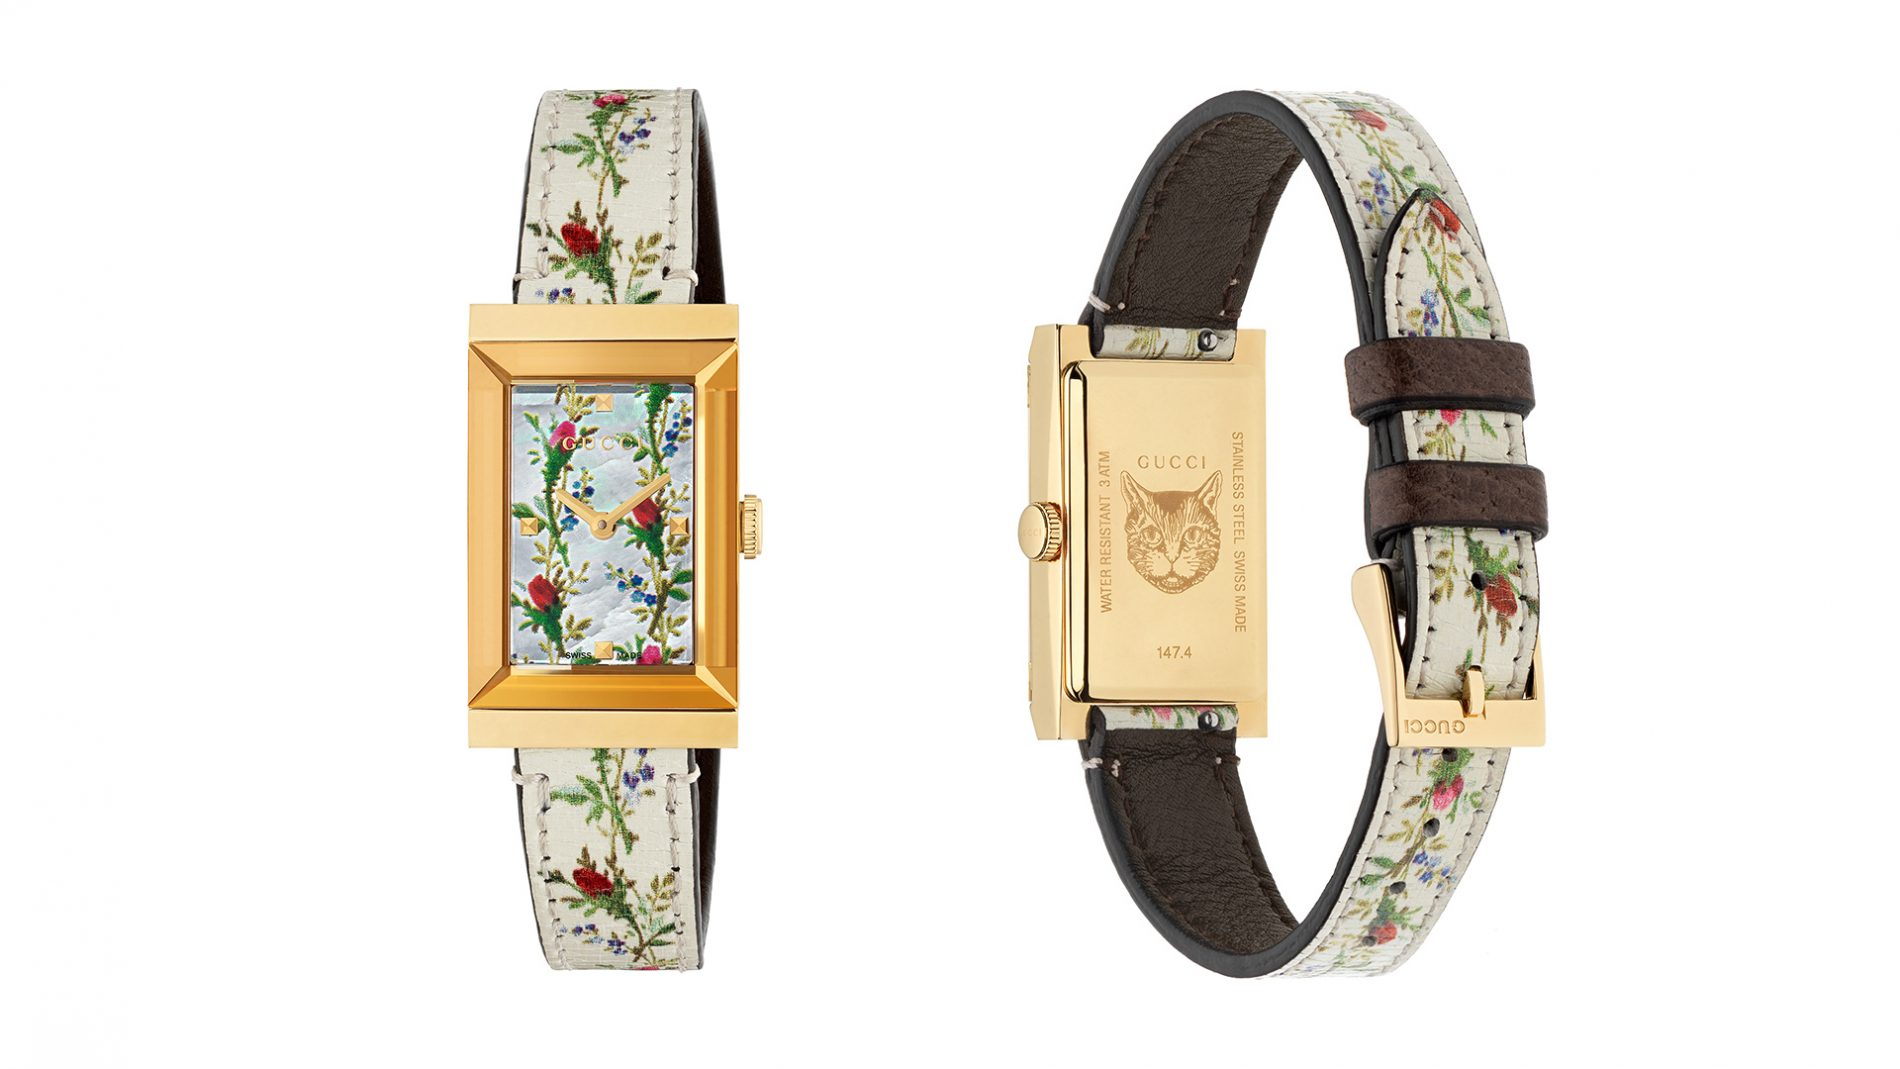 El Corte Inglés Watch Luxury Gucci Floral Print